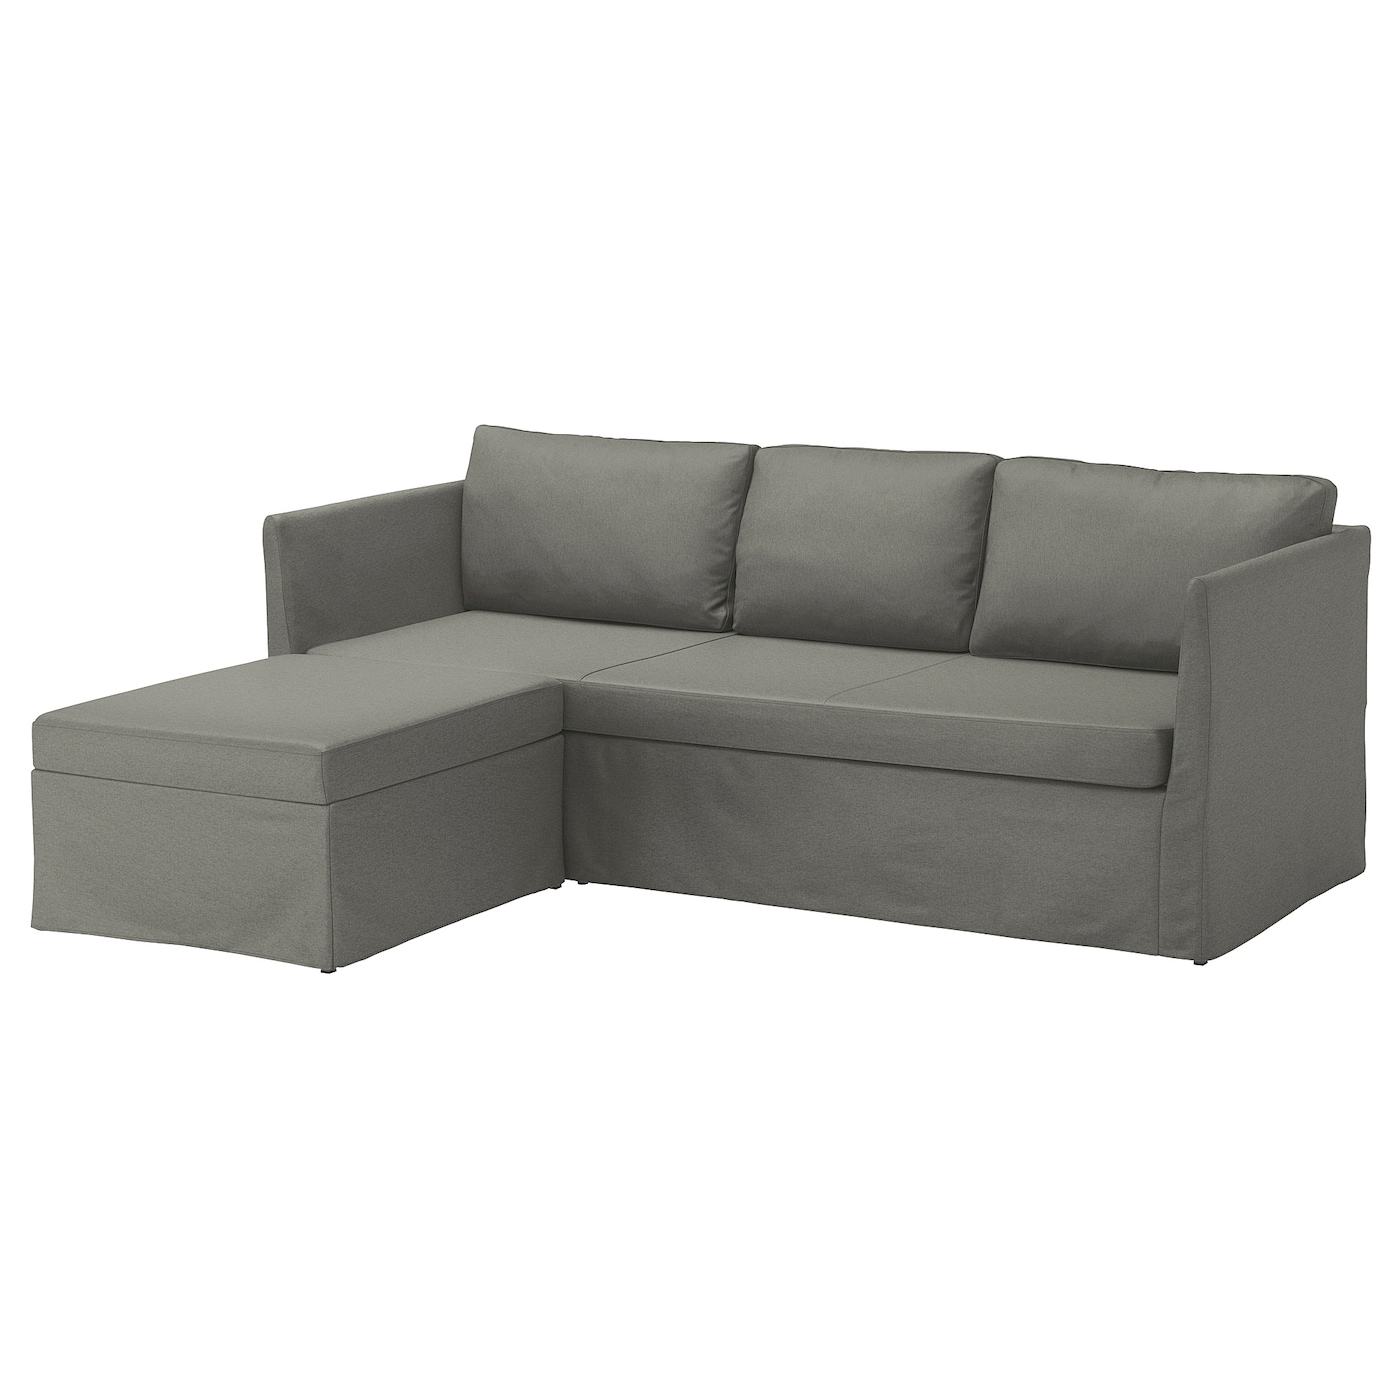 BRÅTHULT Corner sofa-bed, Borred grey-green